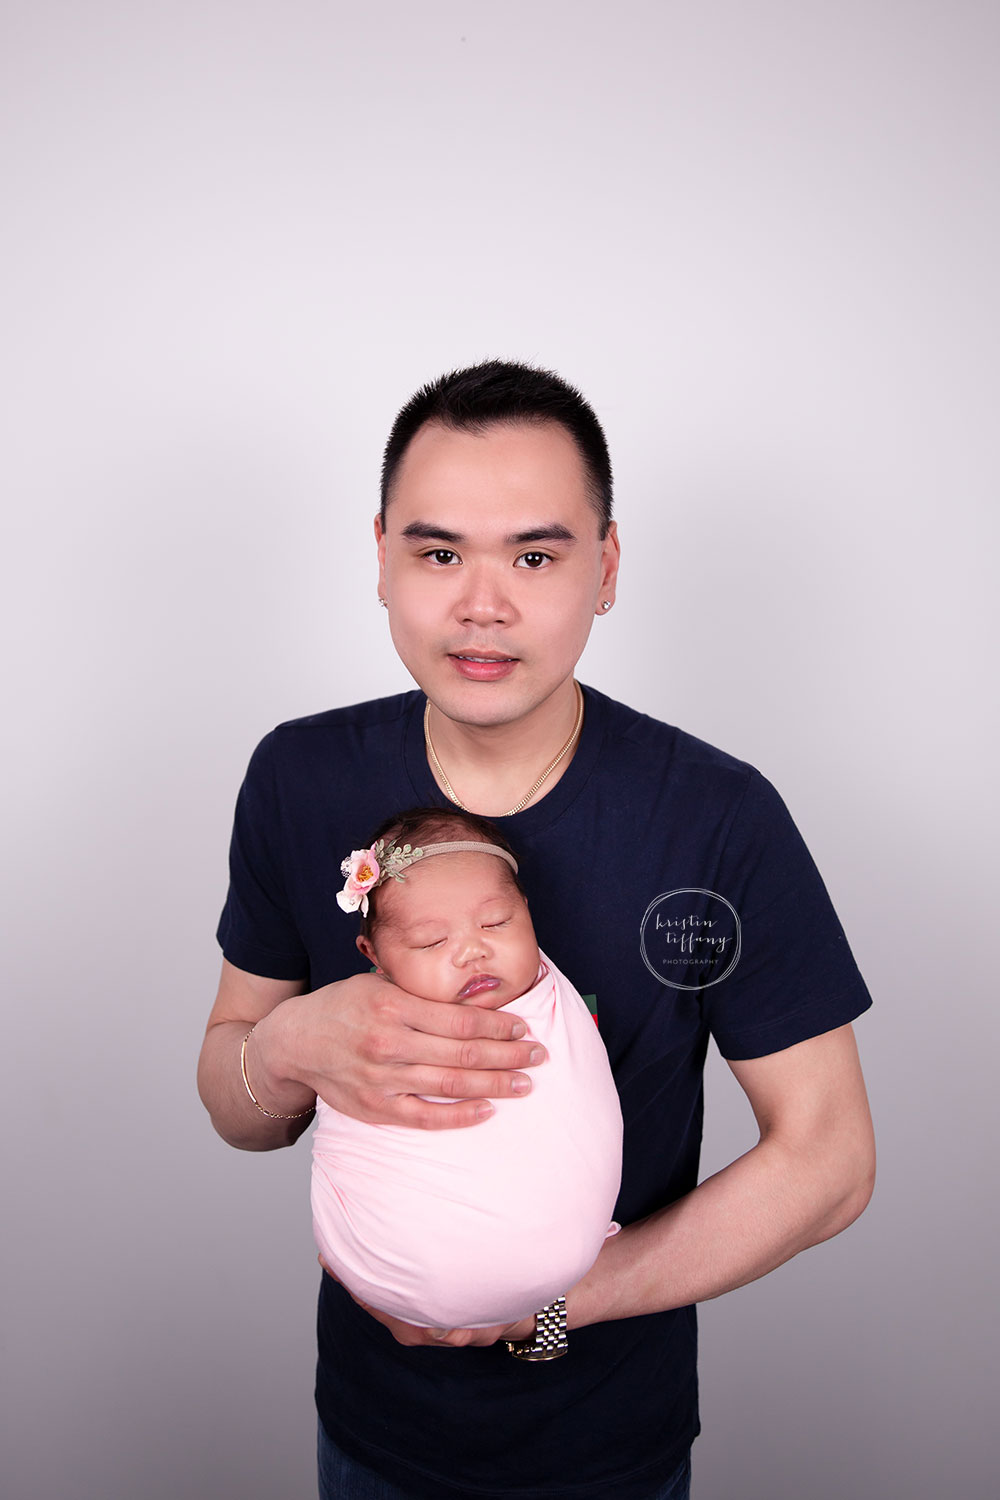 a photo of a newborn baby girl with her father at a photoshoot